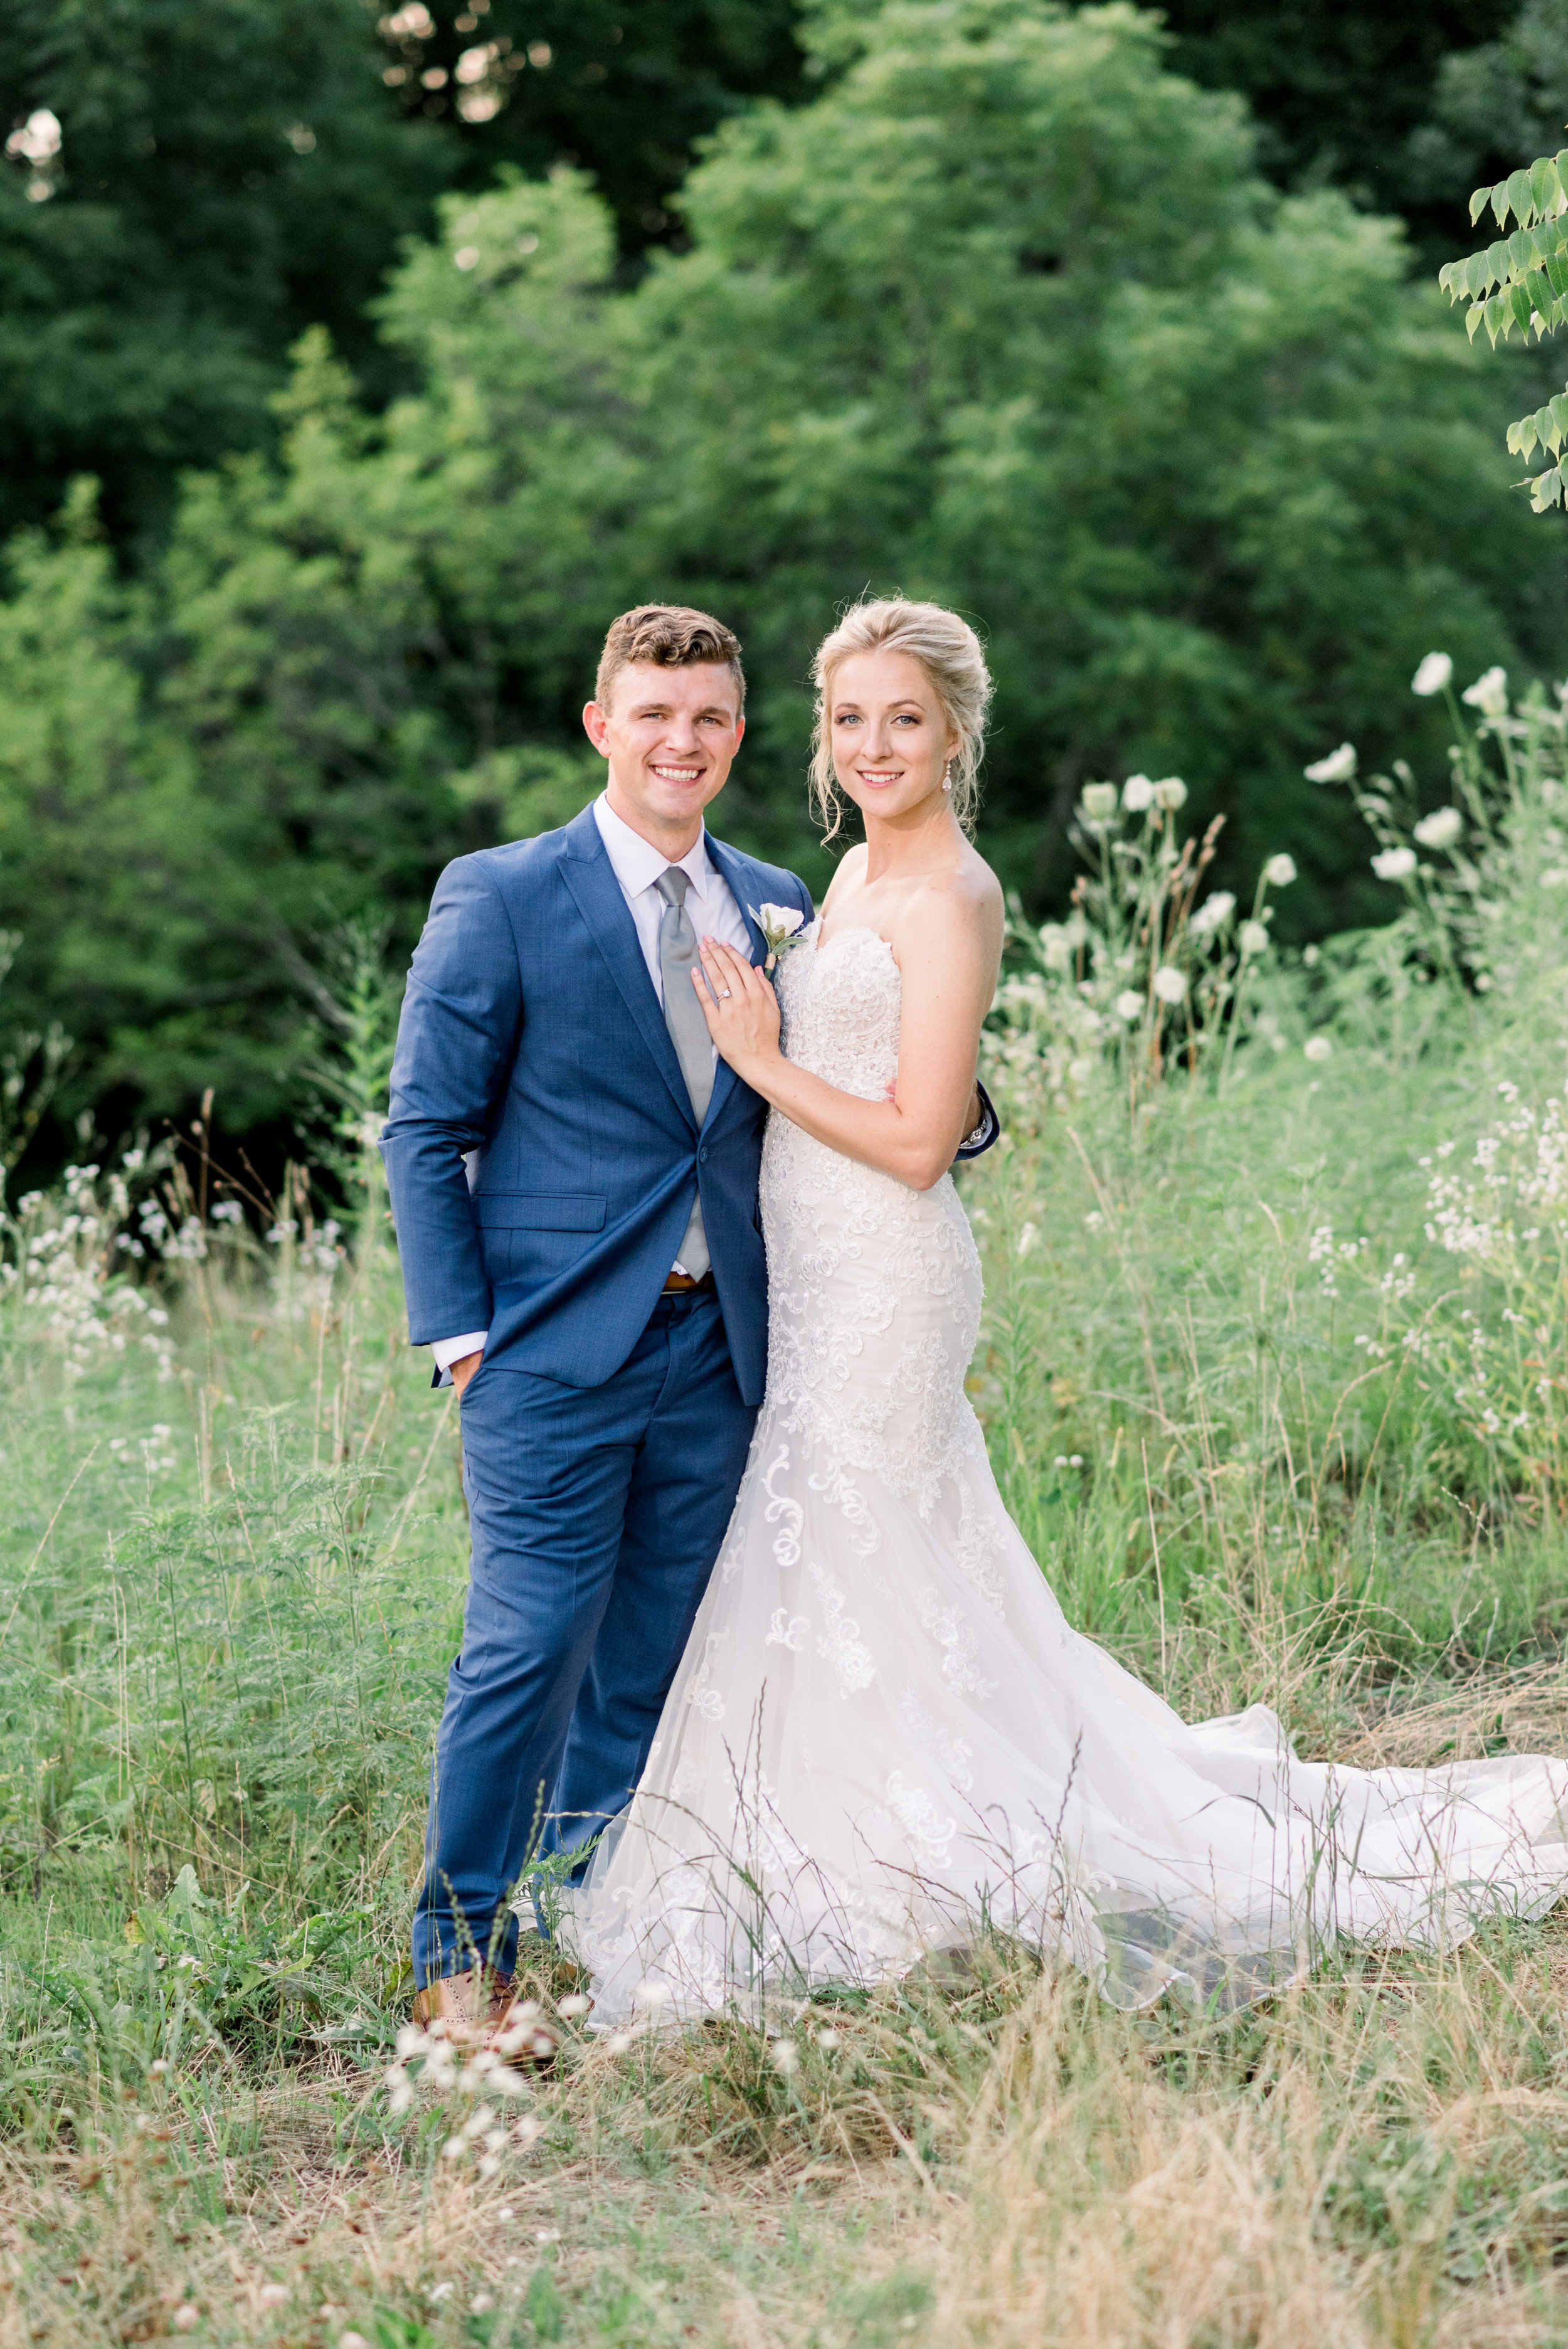 The-Fields-Reserve-Stoughton-WI-Bride-and-Groom-Wedding-Photos-403.jpg